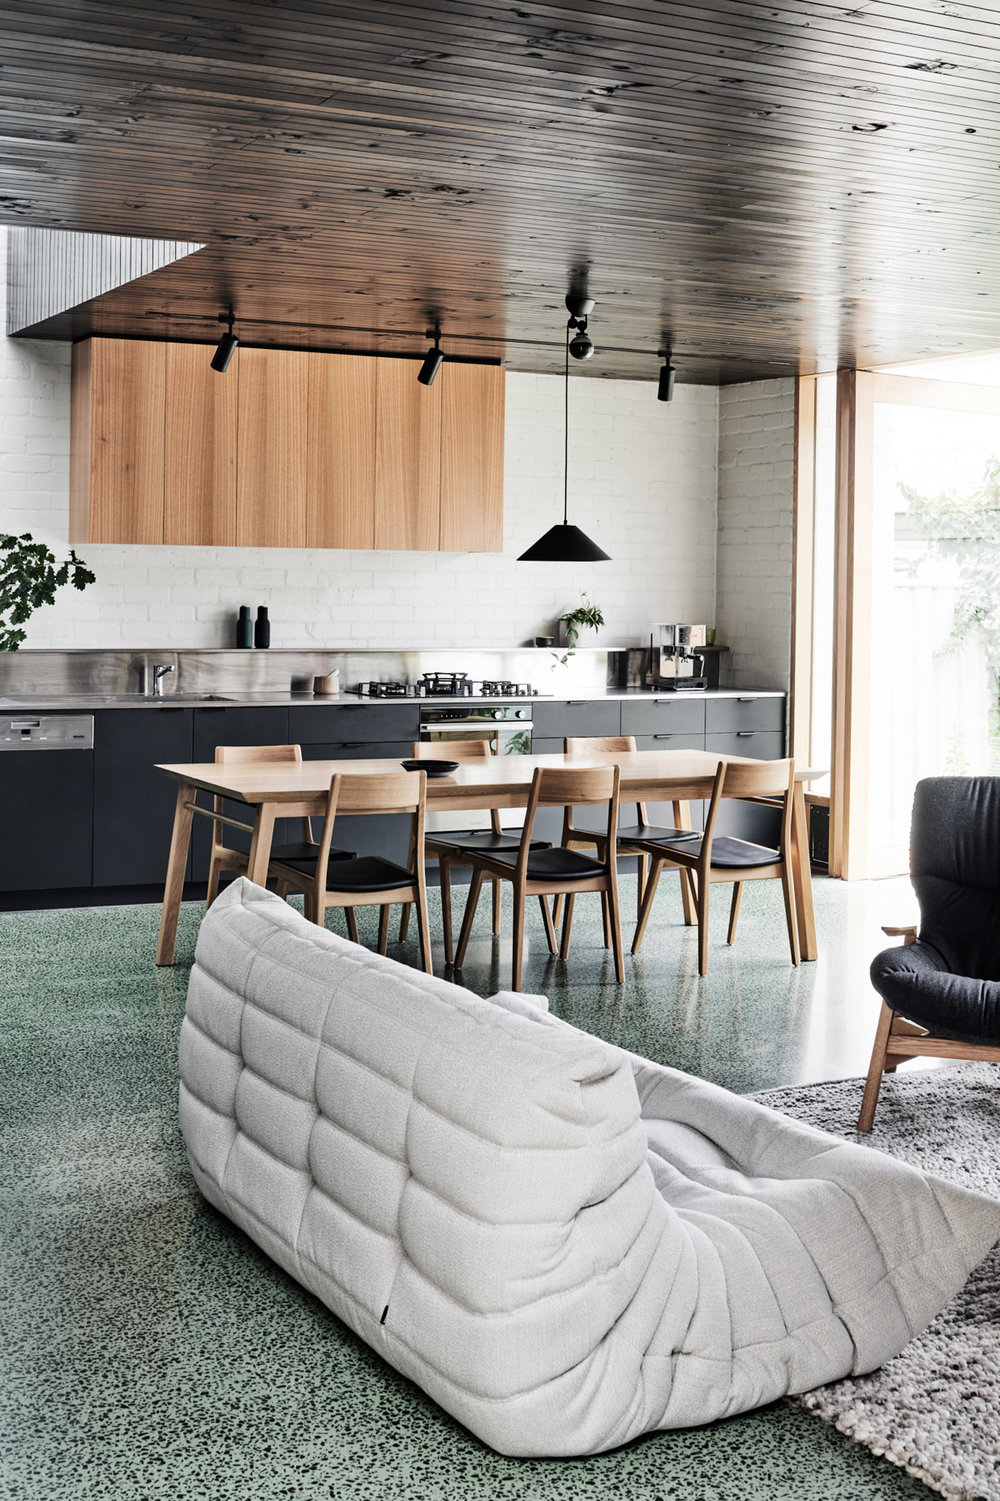 brunswick-west-house-taylor-knights-architecture-residential-extensions-australia-victoria_dezeen_1704_col_9.jpg